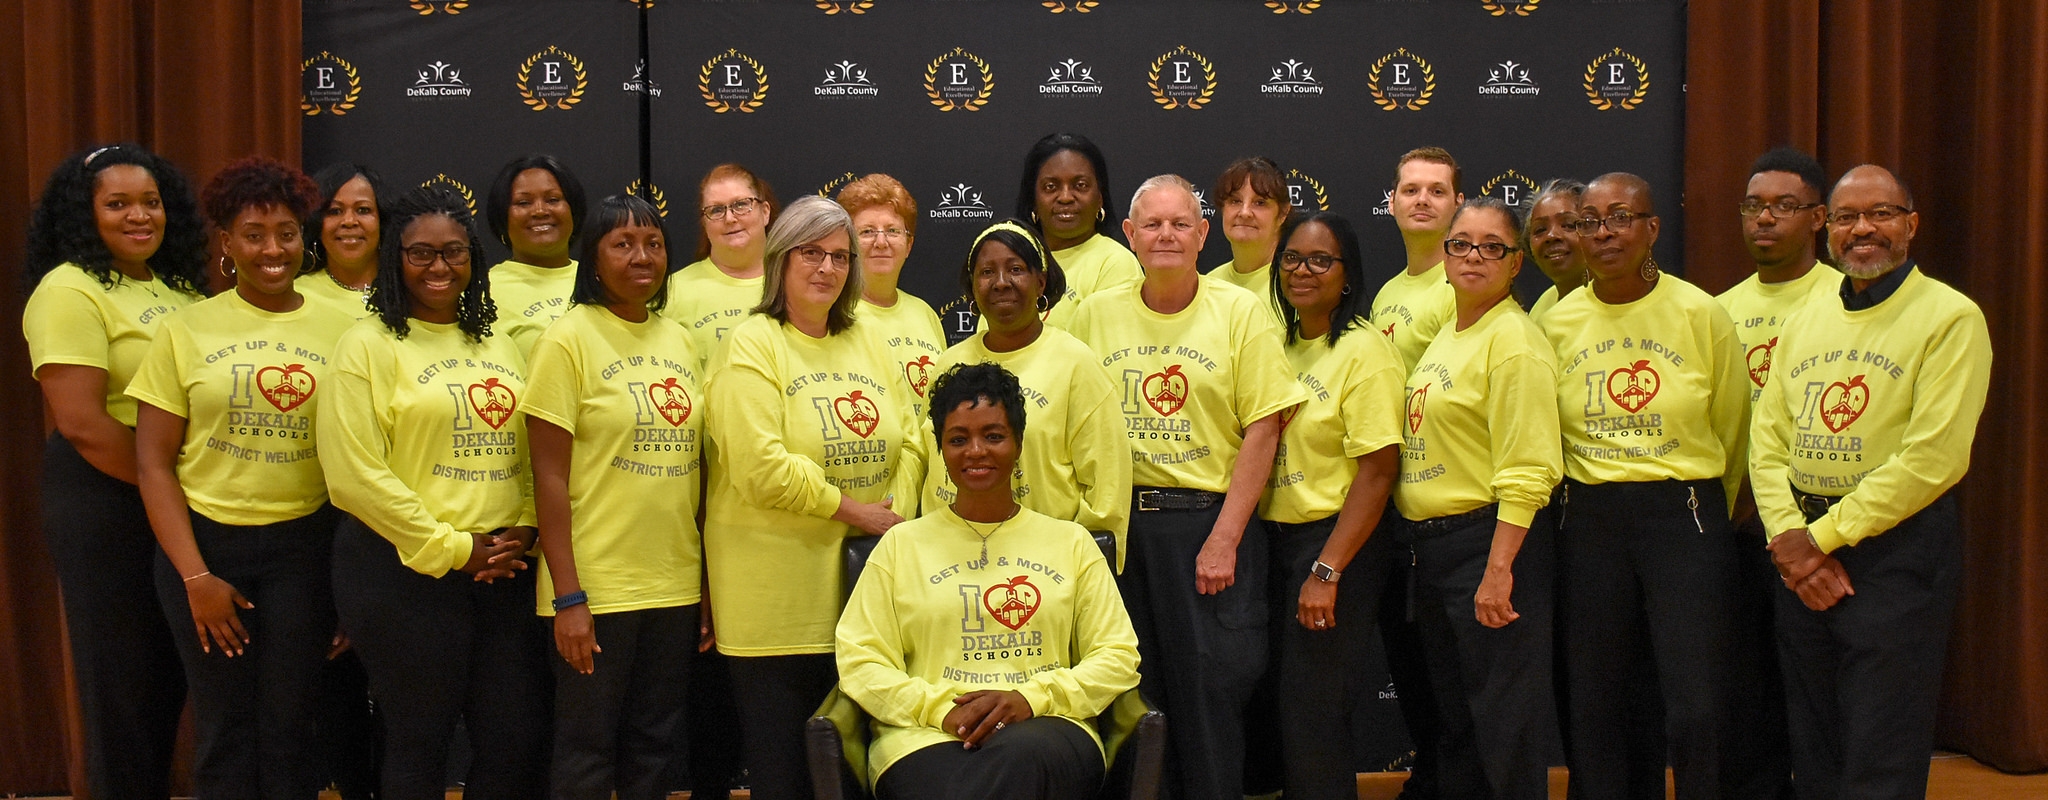 School Nutrition Services staff